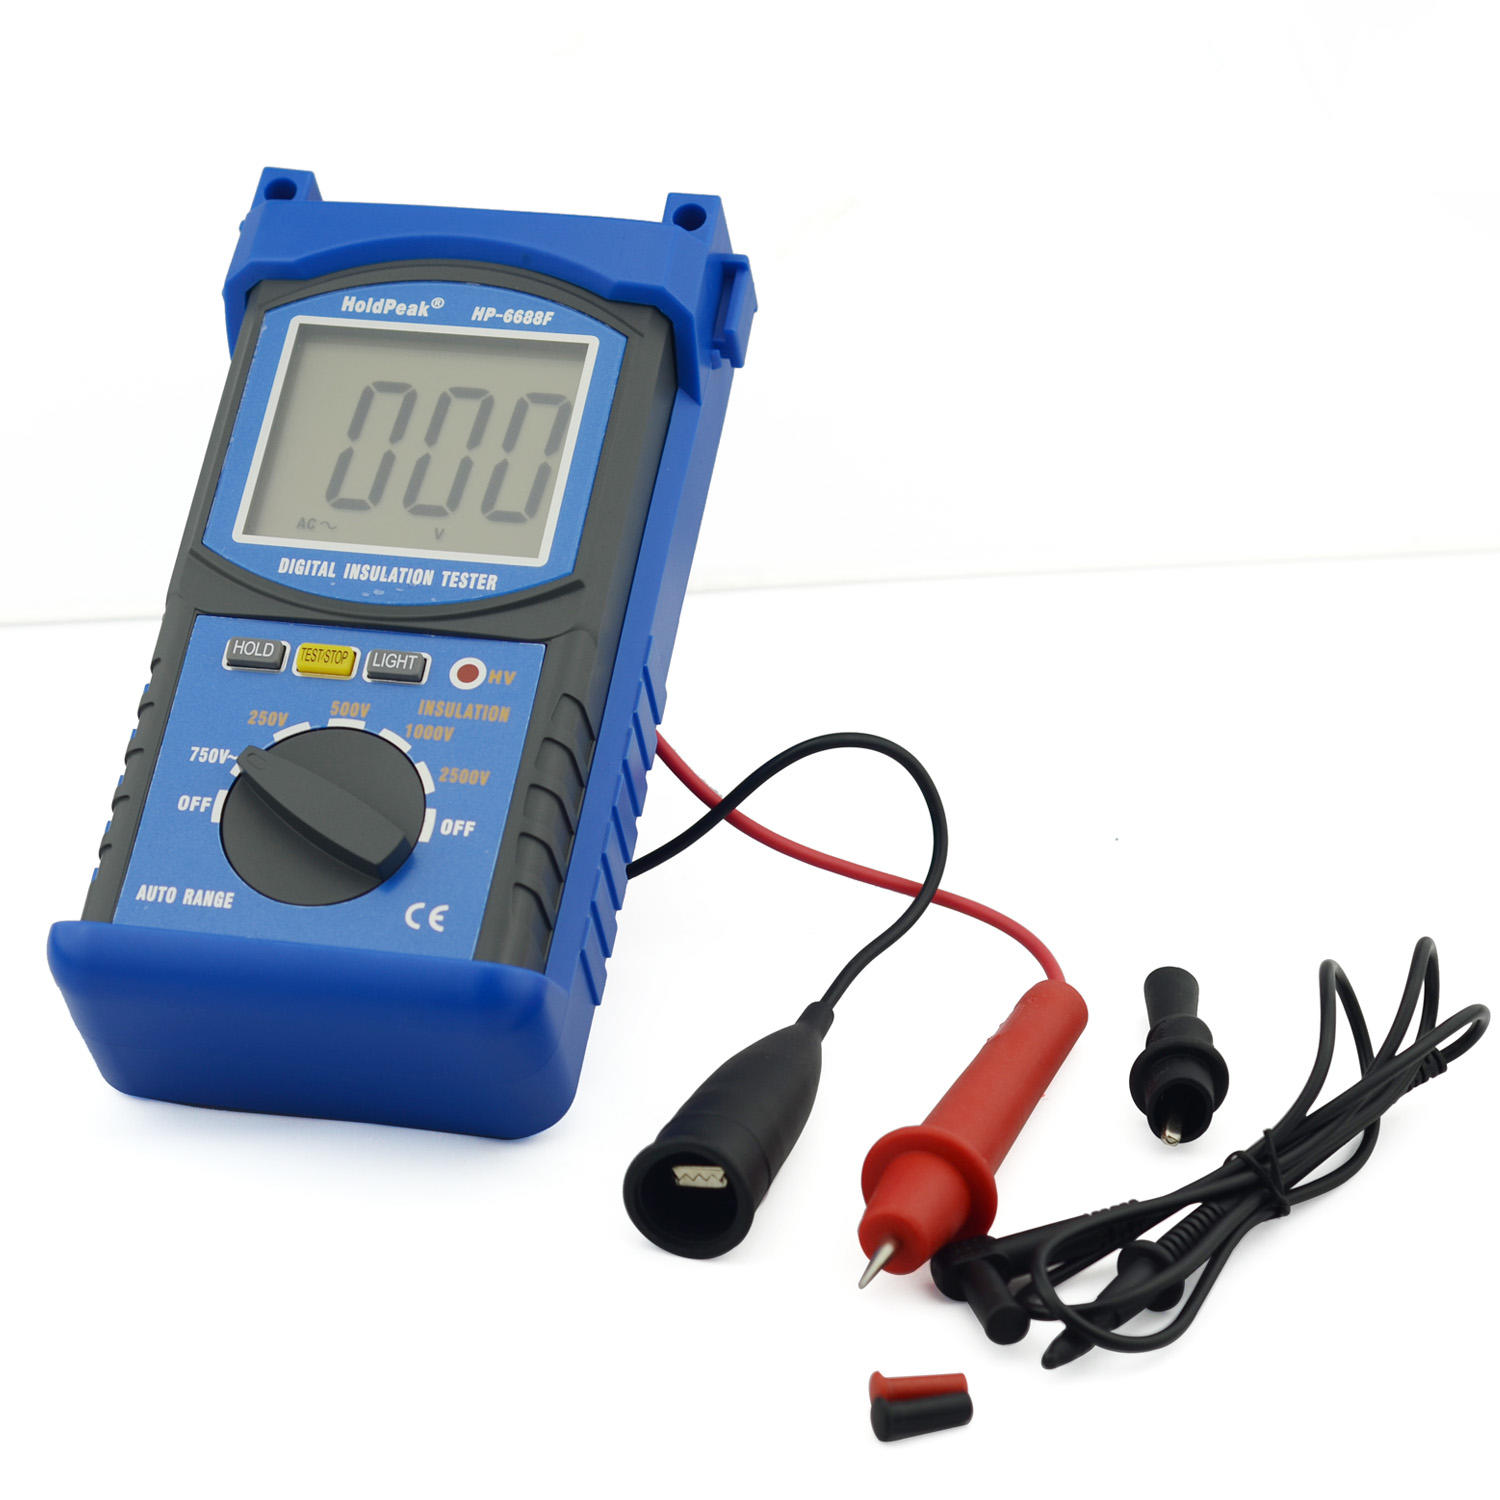 HoldPeak monitorhp6688c cheap insulation tester Supply for verification